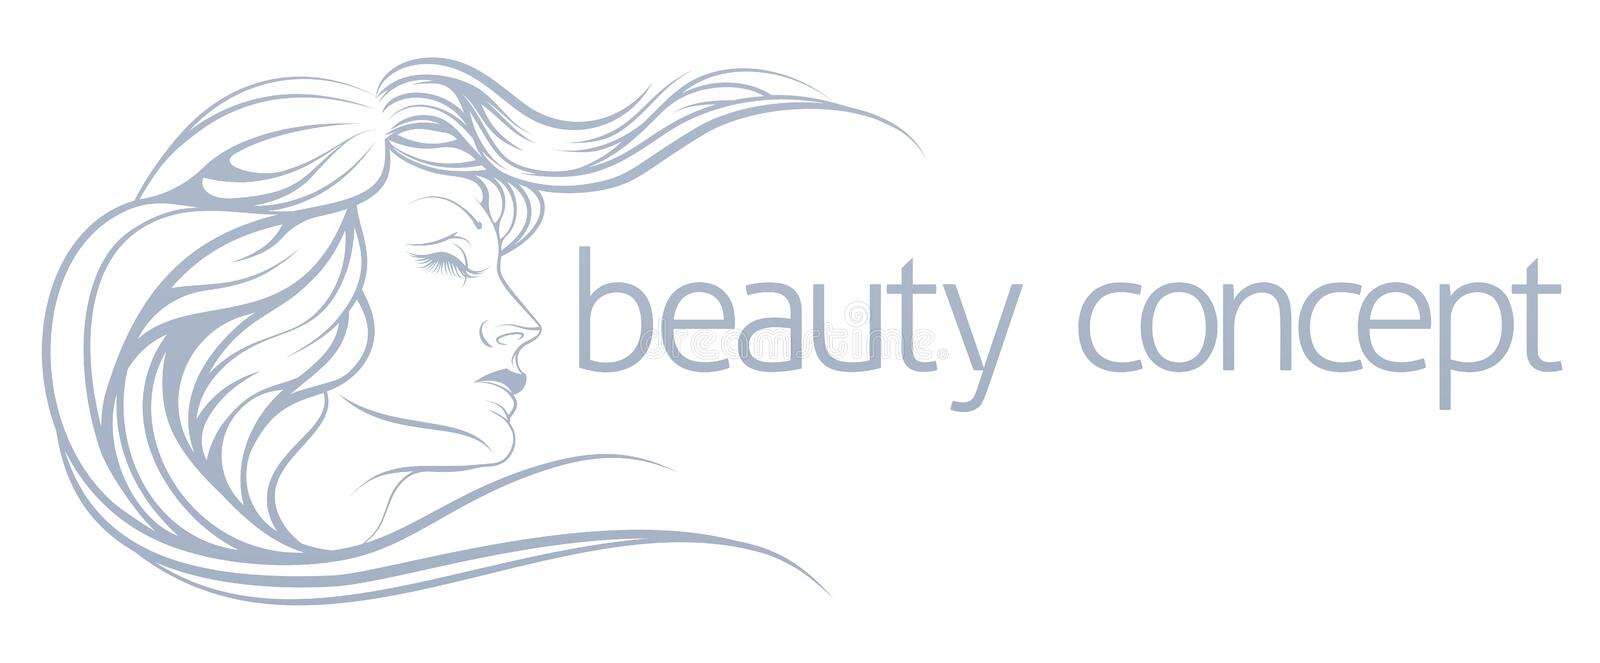 Beauty Concept royalty free illustration